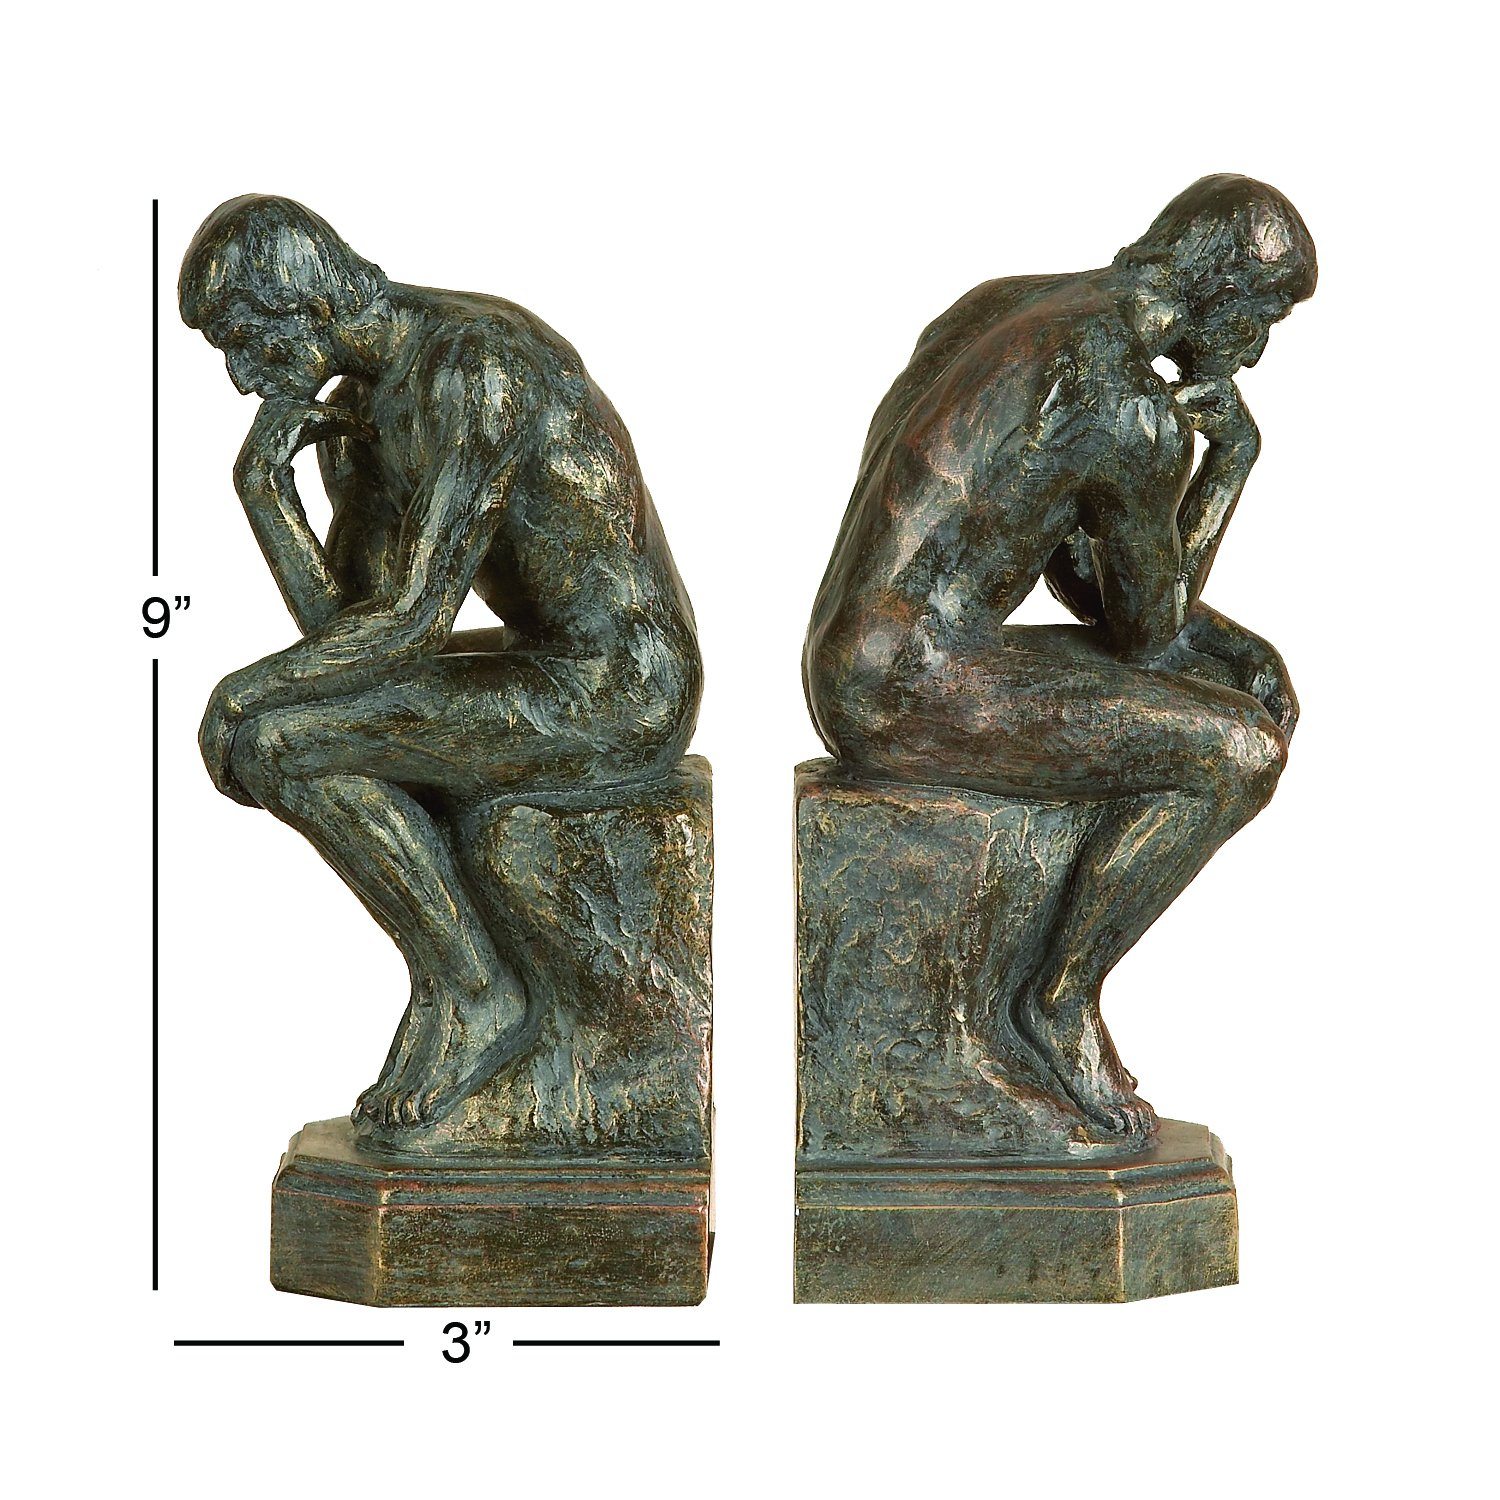 Thinker 75394 Bookends Pair 9